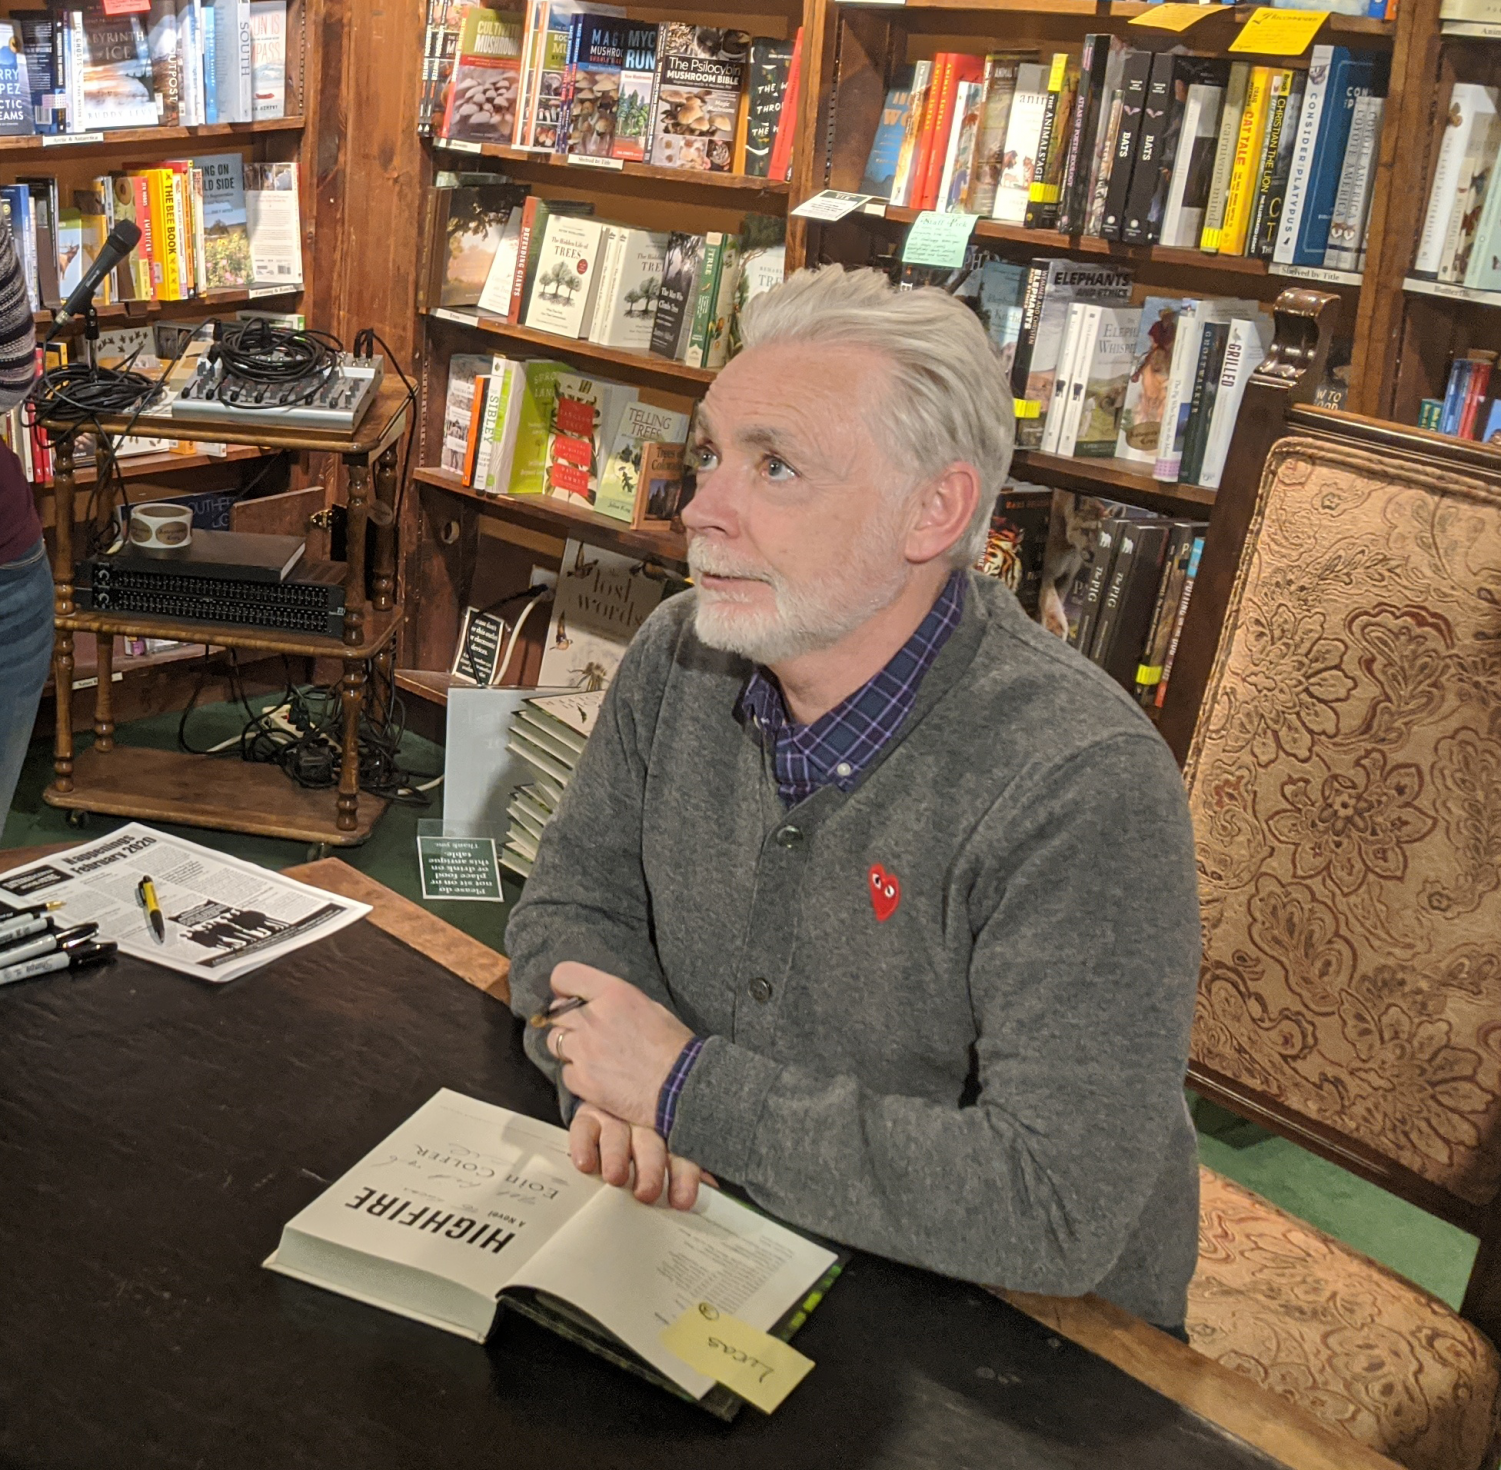 Author Eoin Colfer signing copies of his new book,